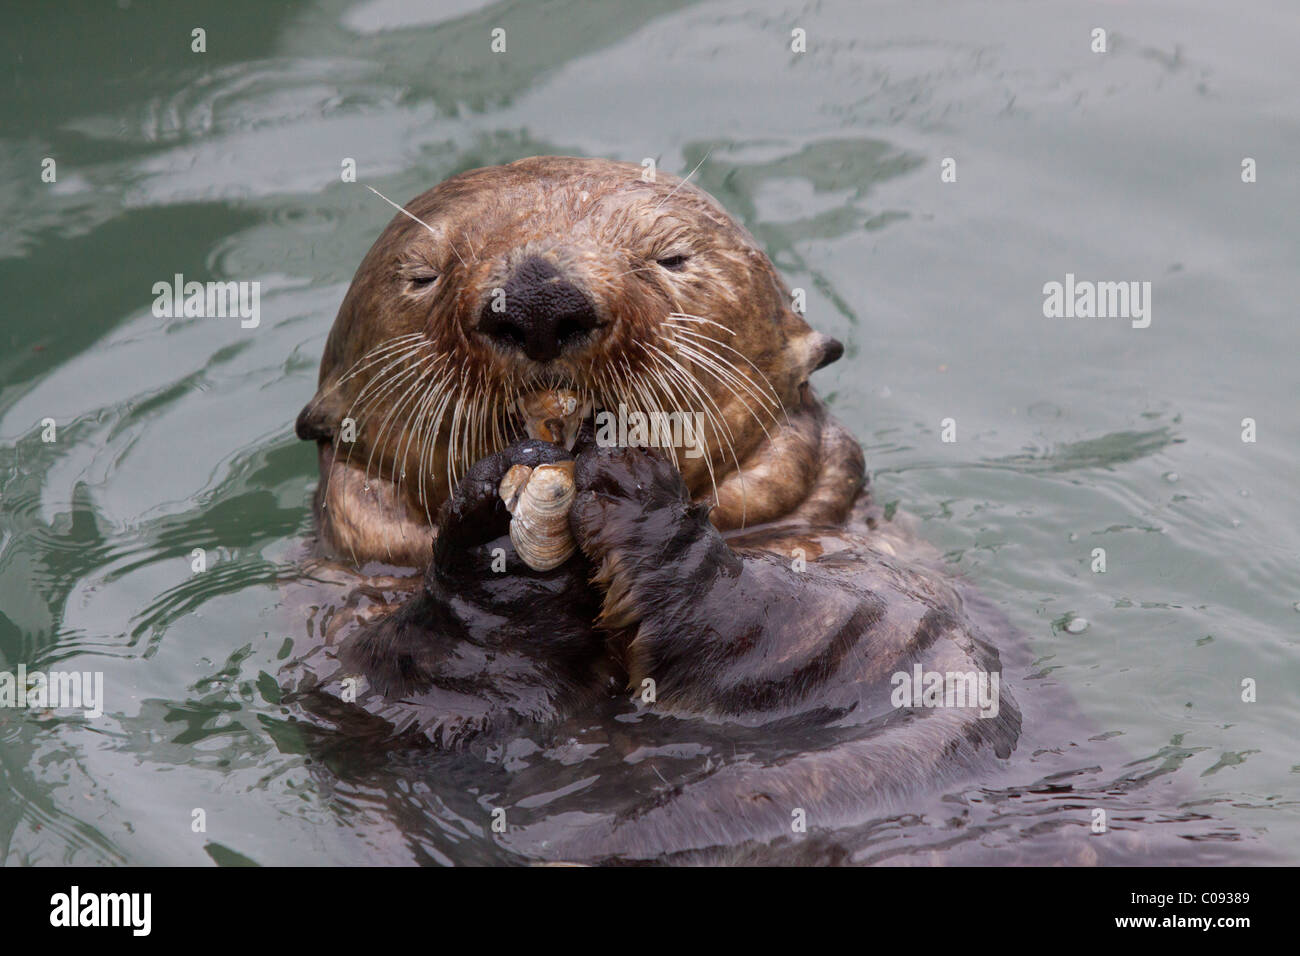 An adult Sea Otter eats a clam while floating in the calm waters of the Valdez Small Boat Harbor, Southcentral Alaska, - Stock Image